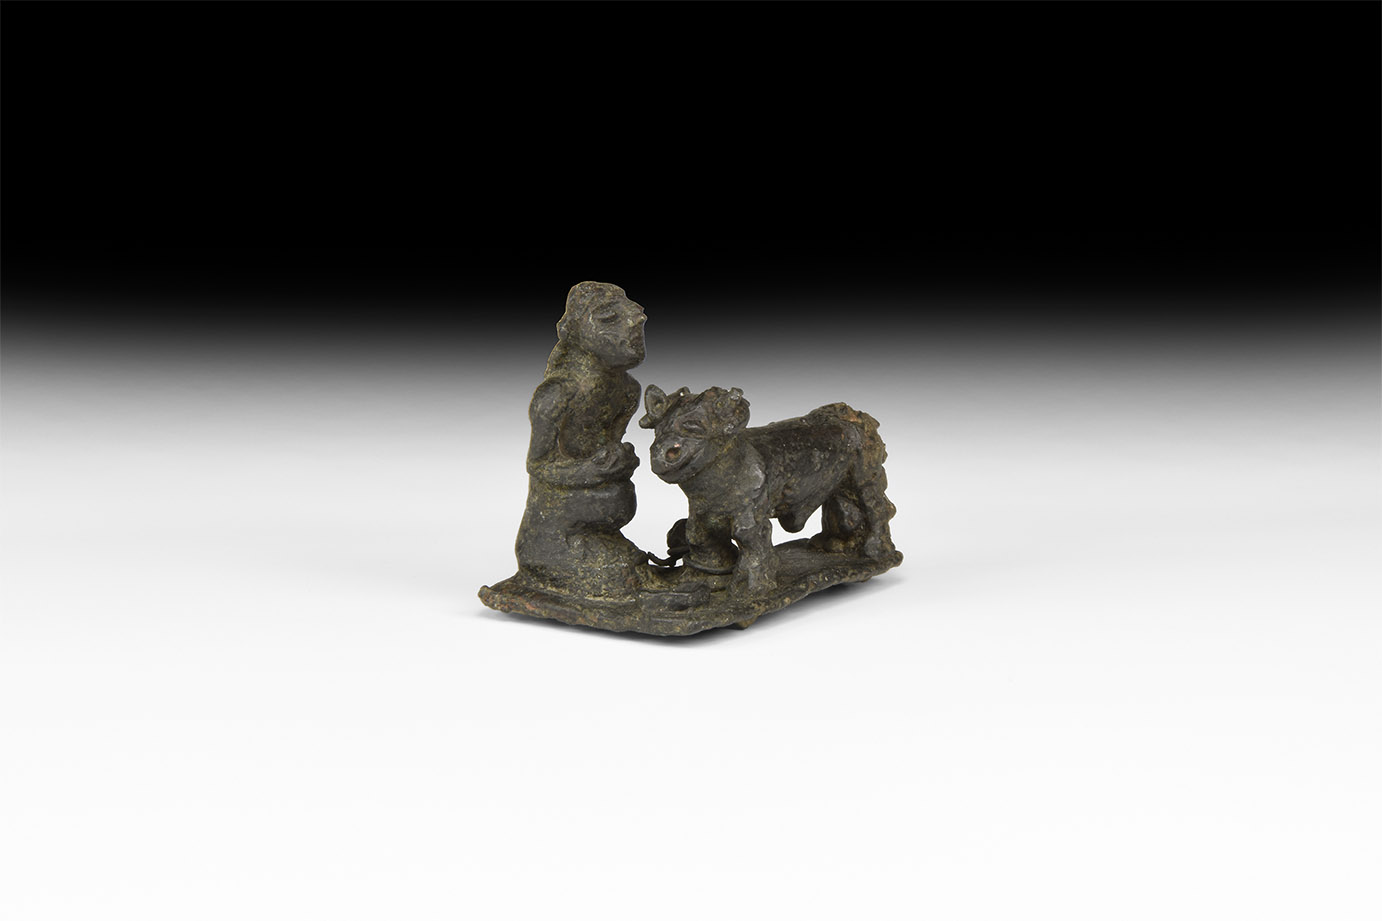 Western Asiatic Kneeling Priest with Sacred Bull Statuette